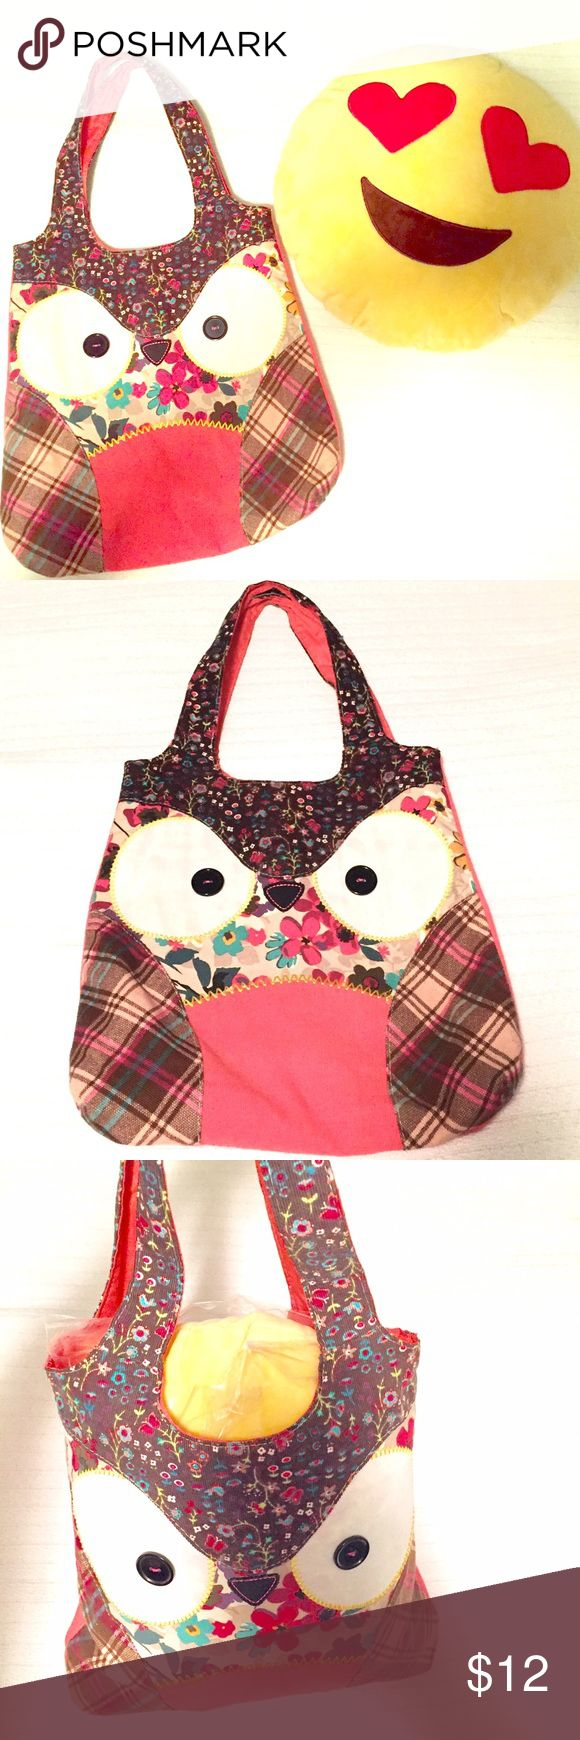 Owl tote w free emoji pillow new buy the tote bag and get a free